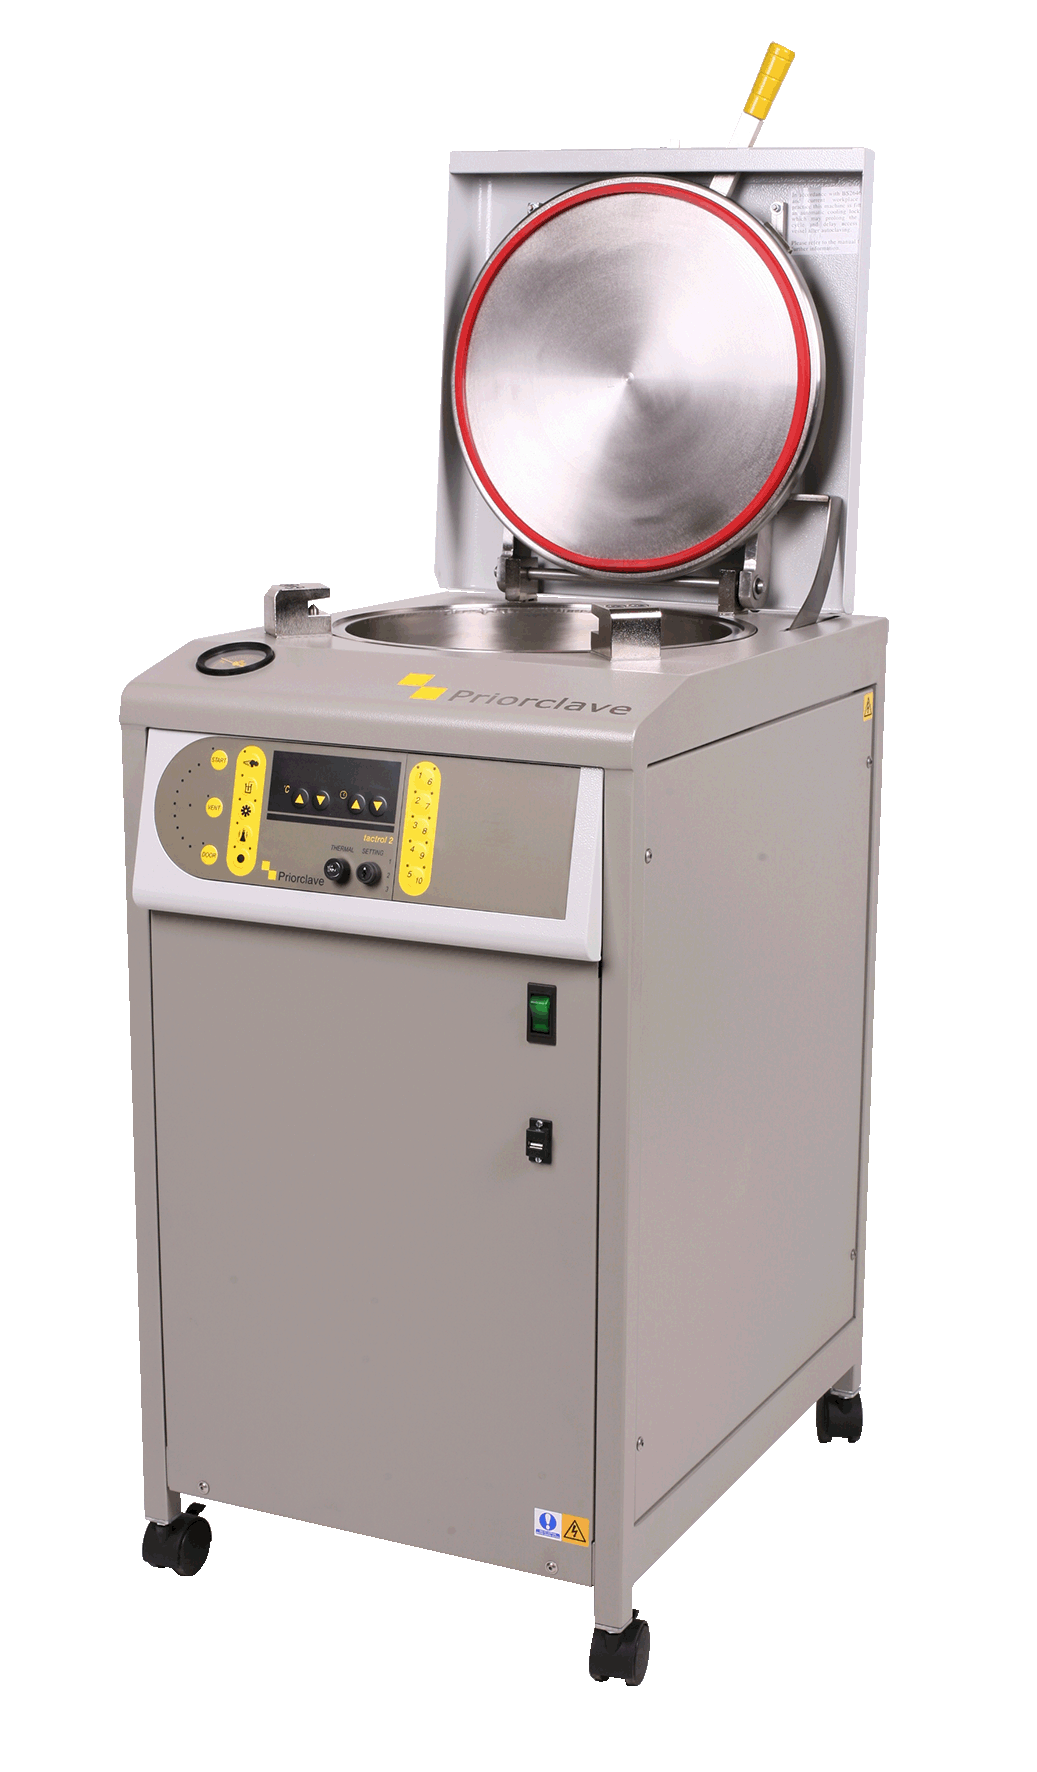 Priorclave C60 top loading autoclave